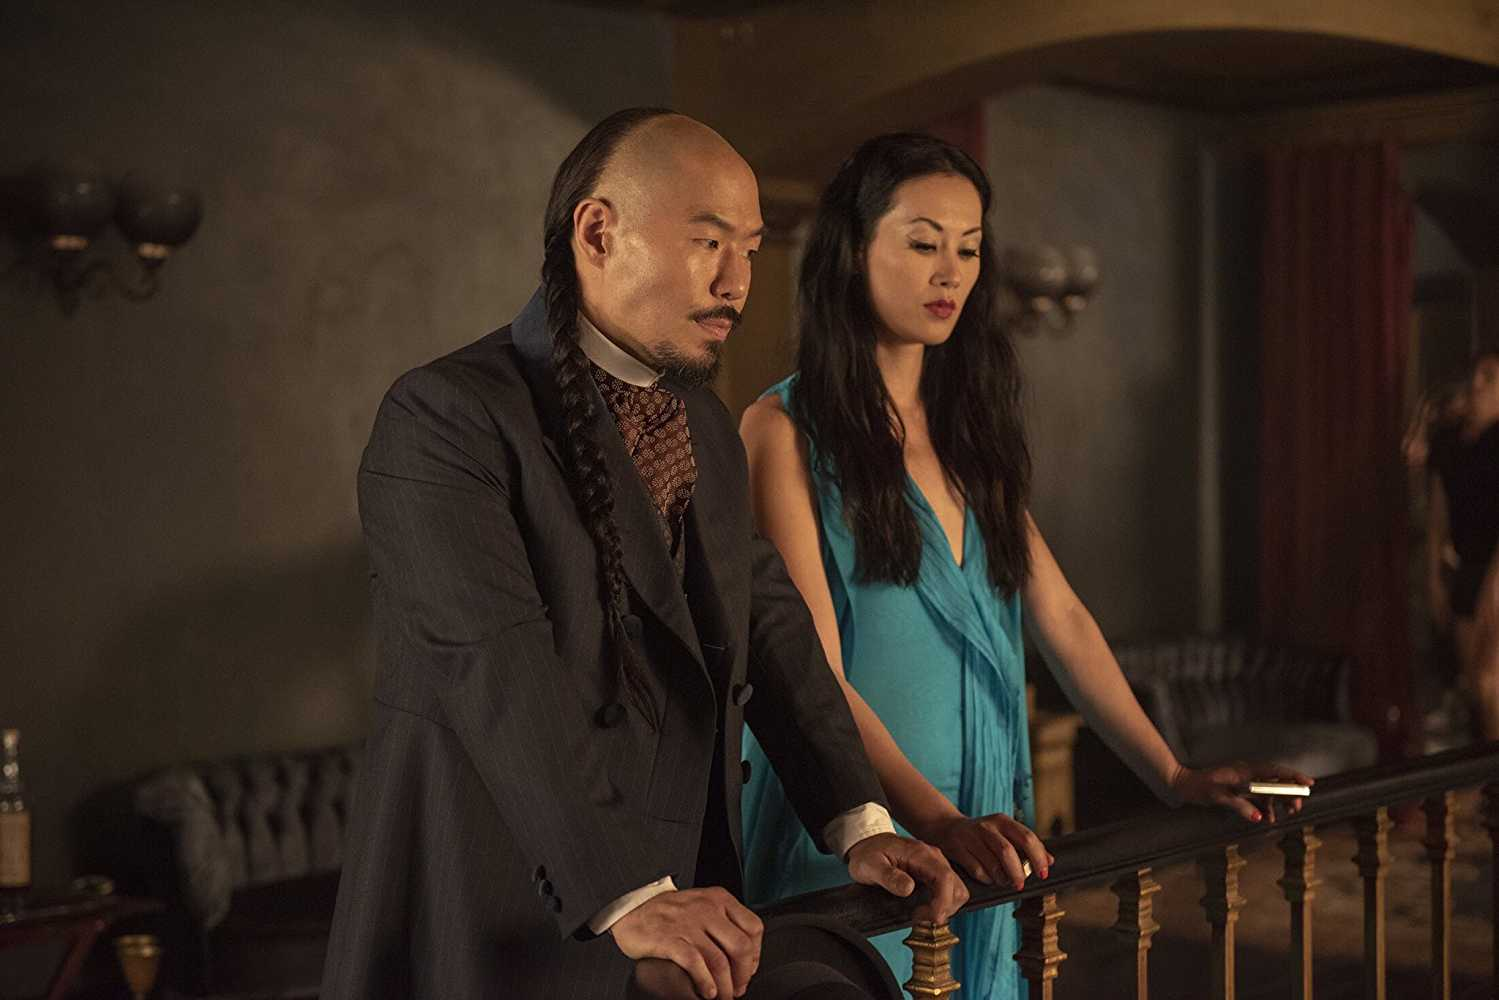 Olivia Cheng as the brothel madam, Ah Toy. (IMDb)